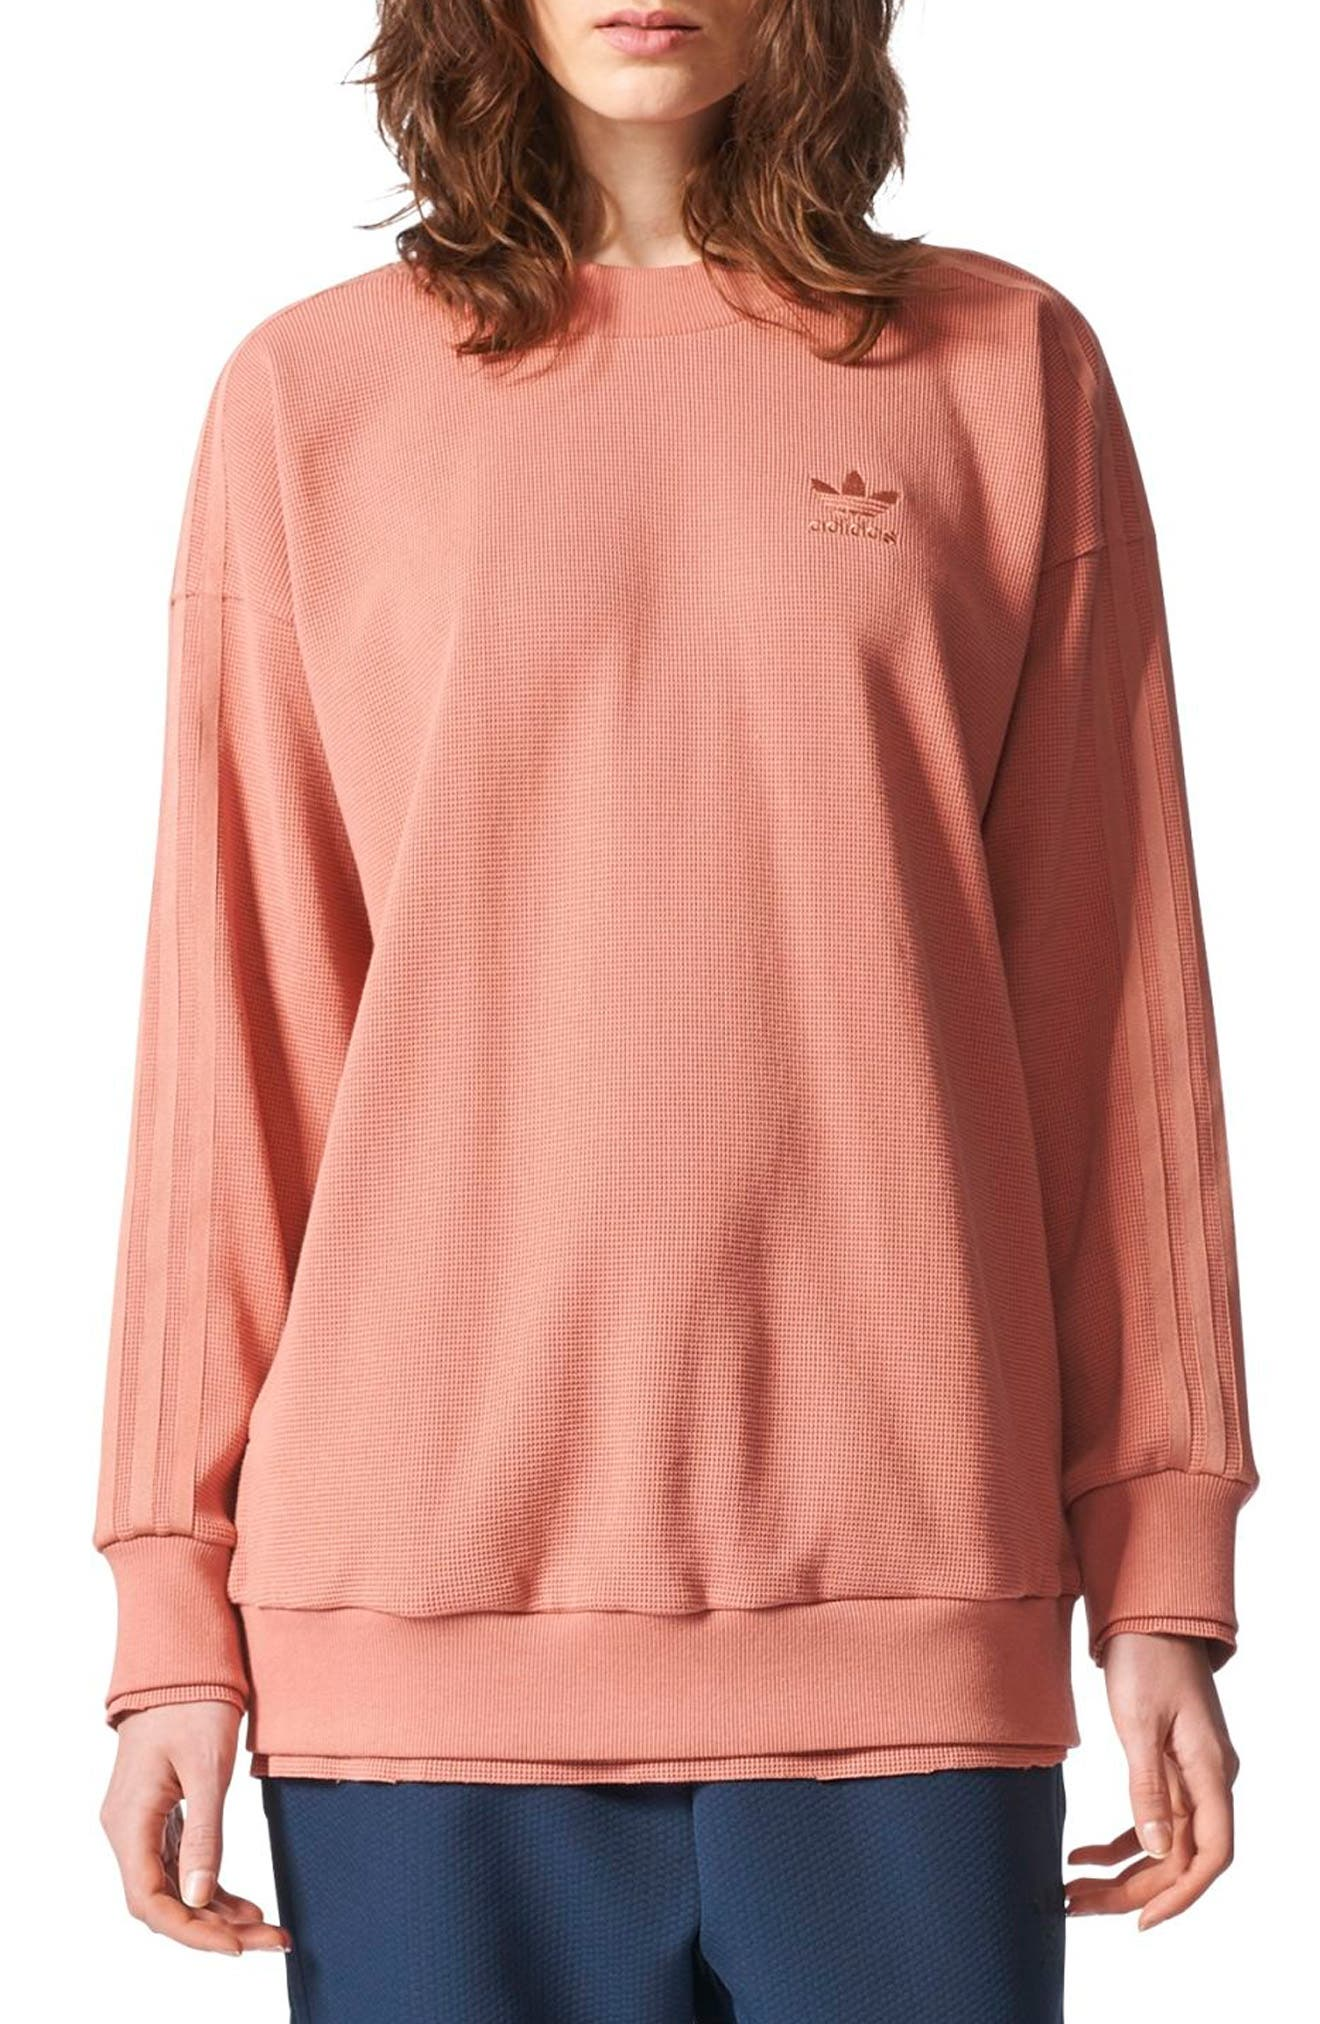 Originals Thermal Sweatshirt,                         Main,                         color,